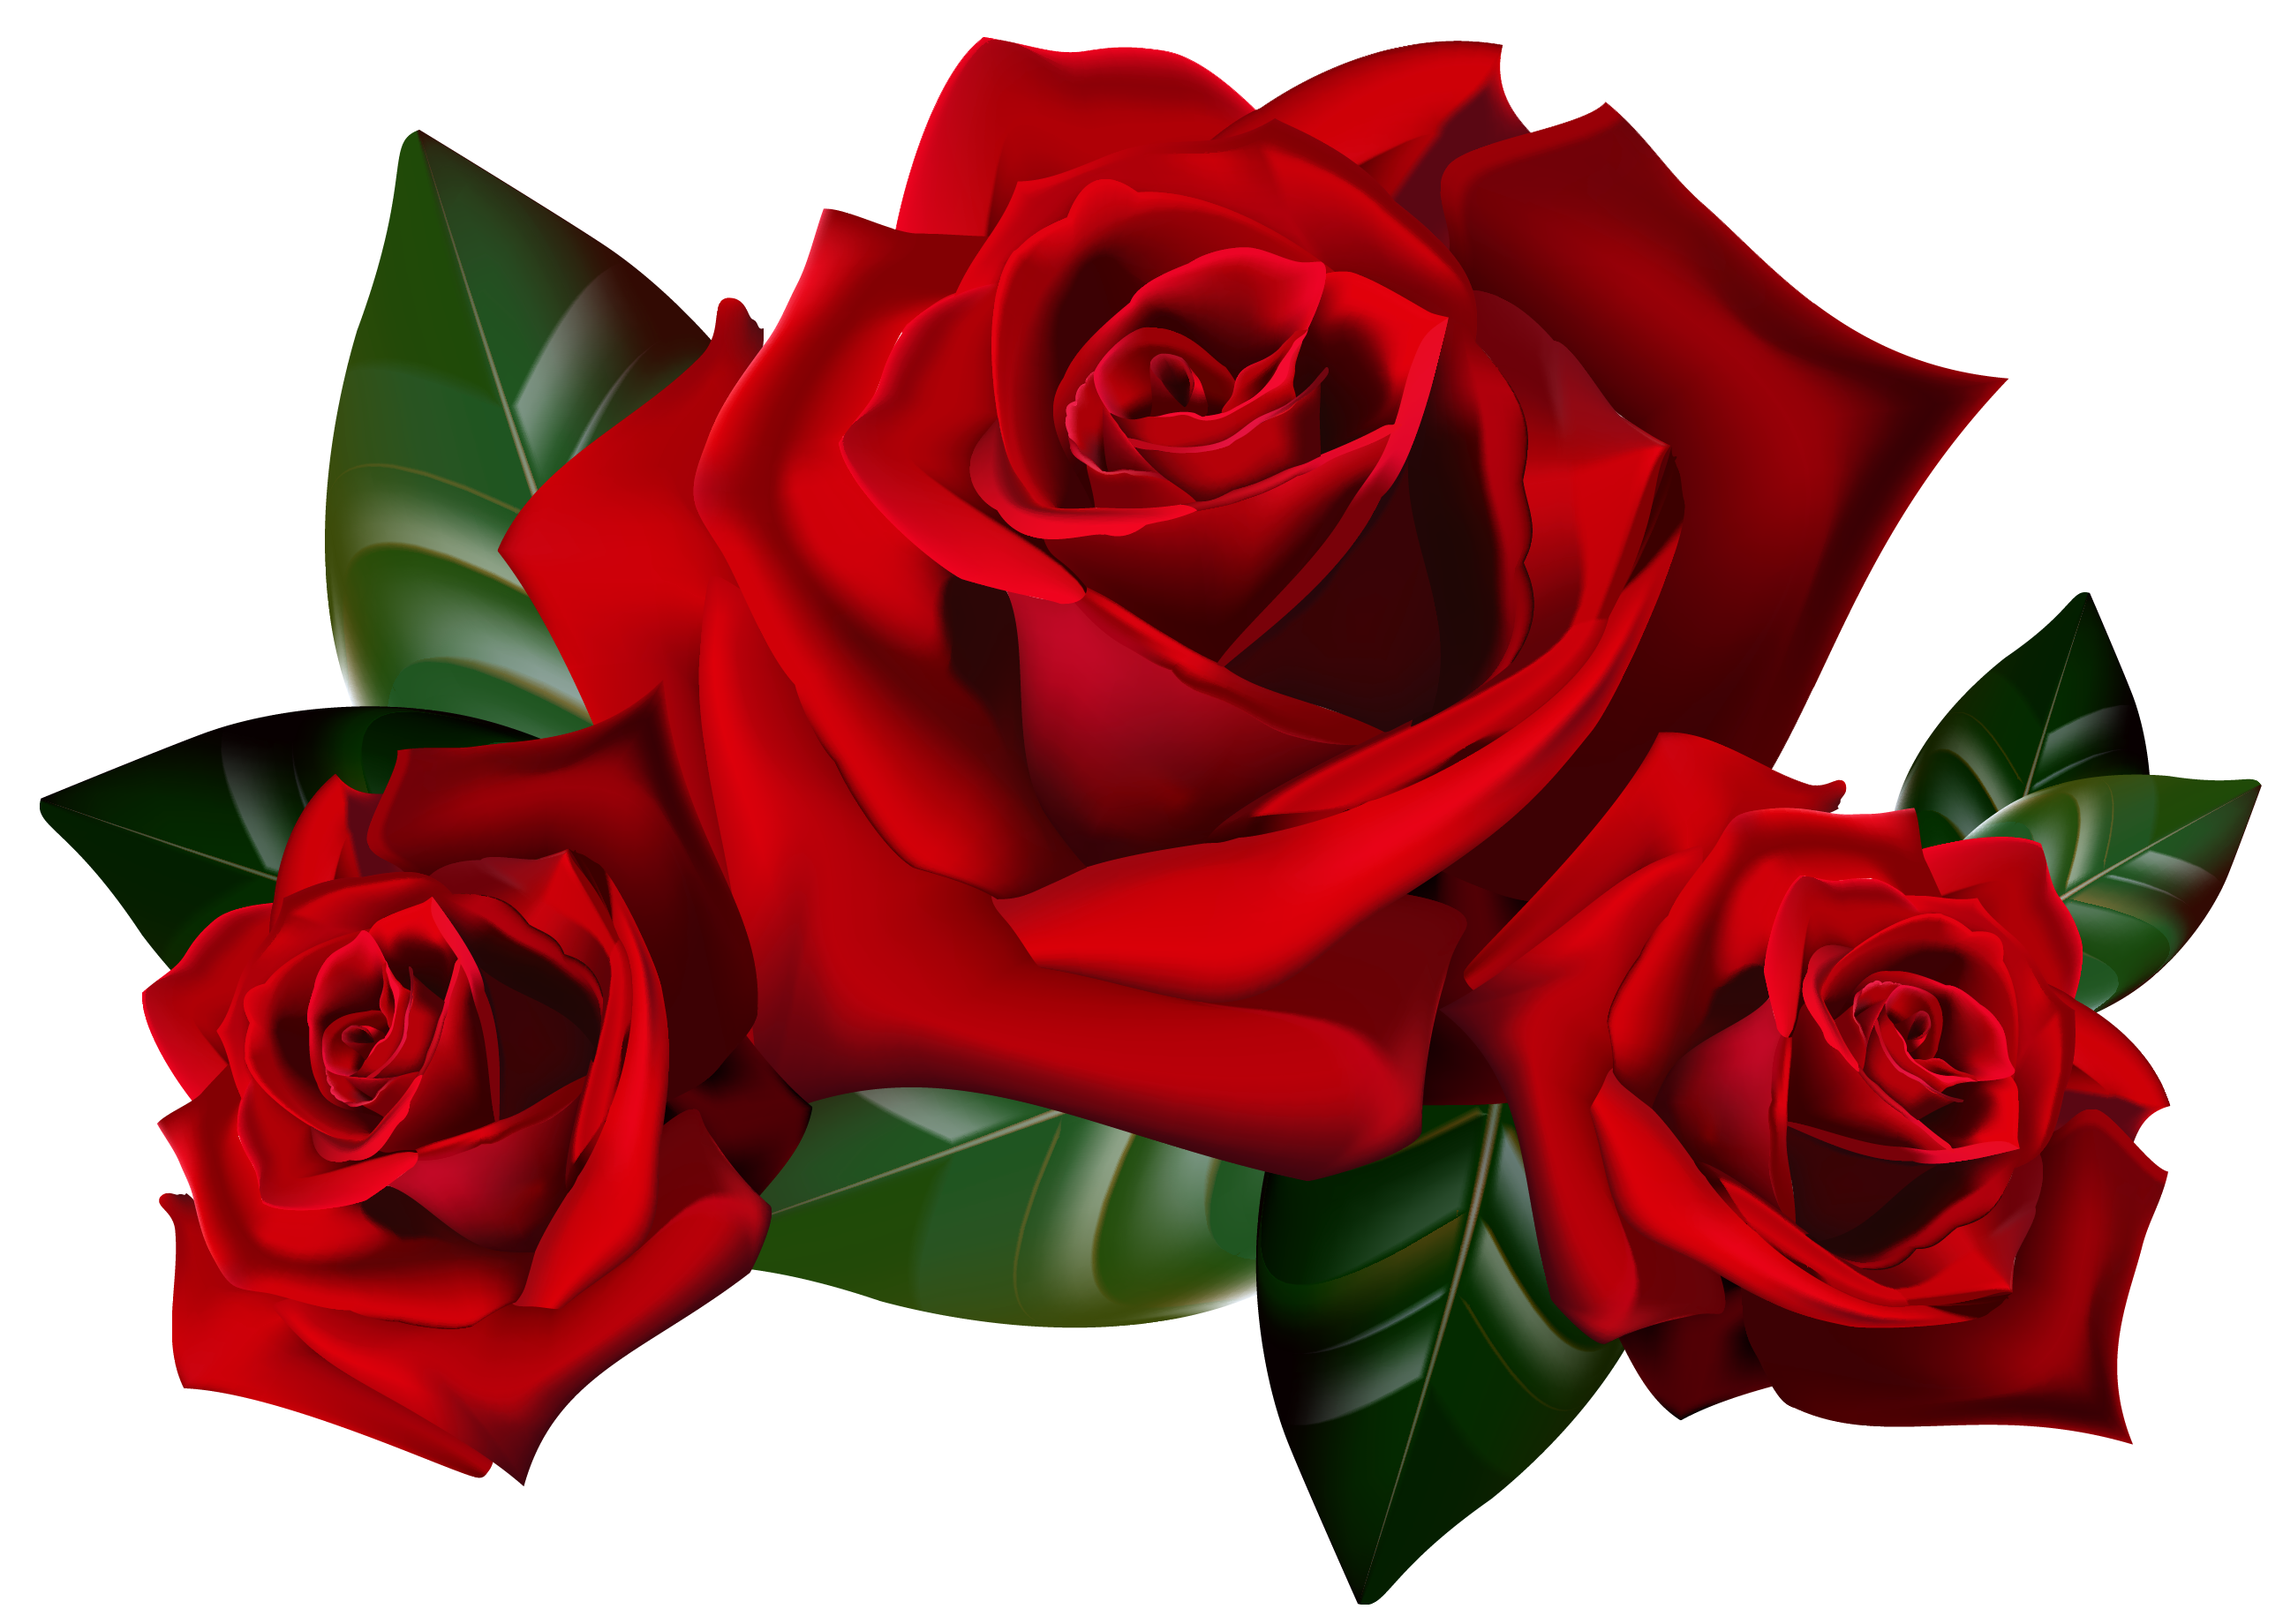 Bouquet of roses frame. Clipart rose rose bud